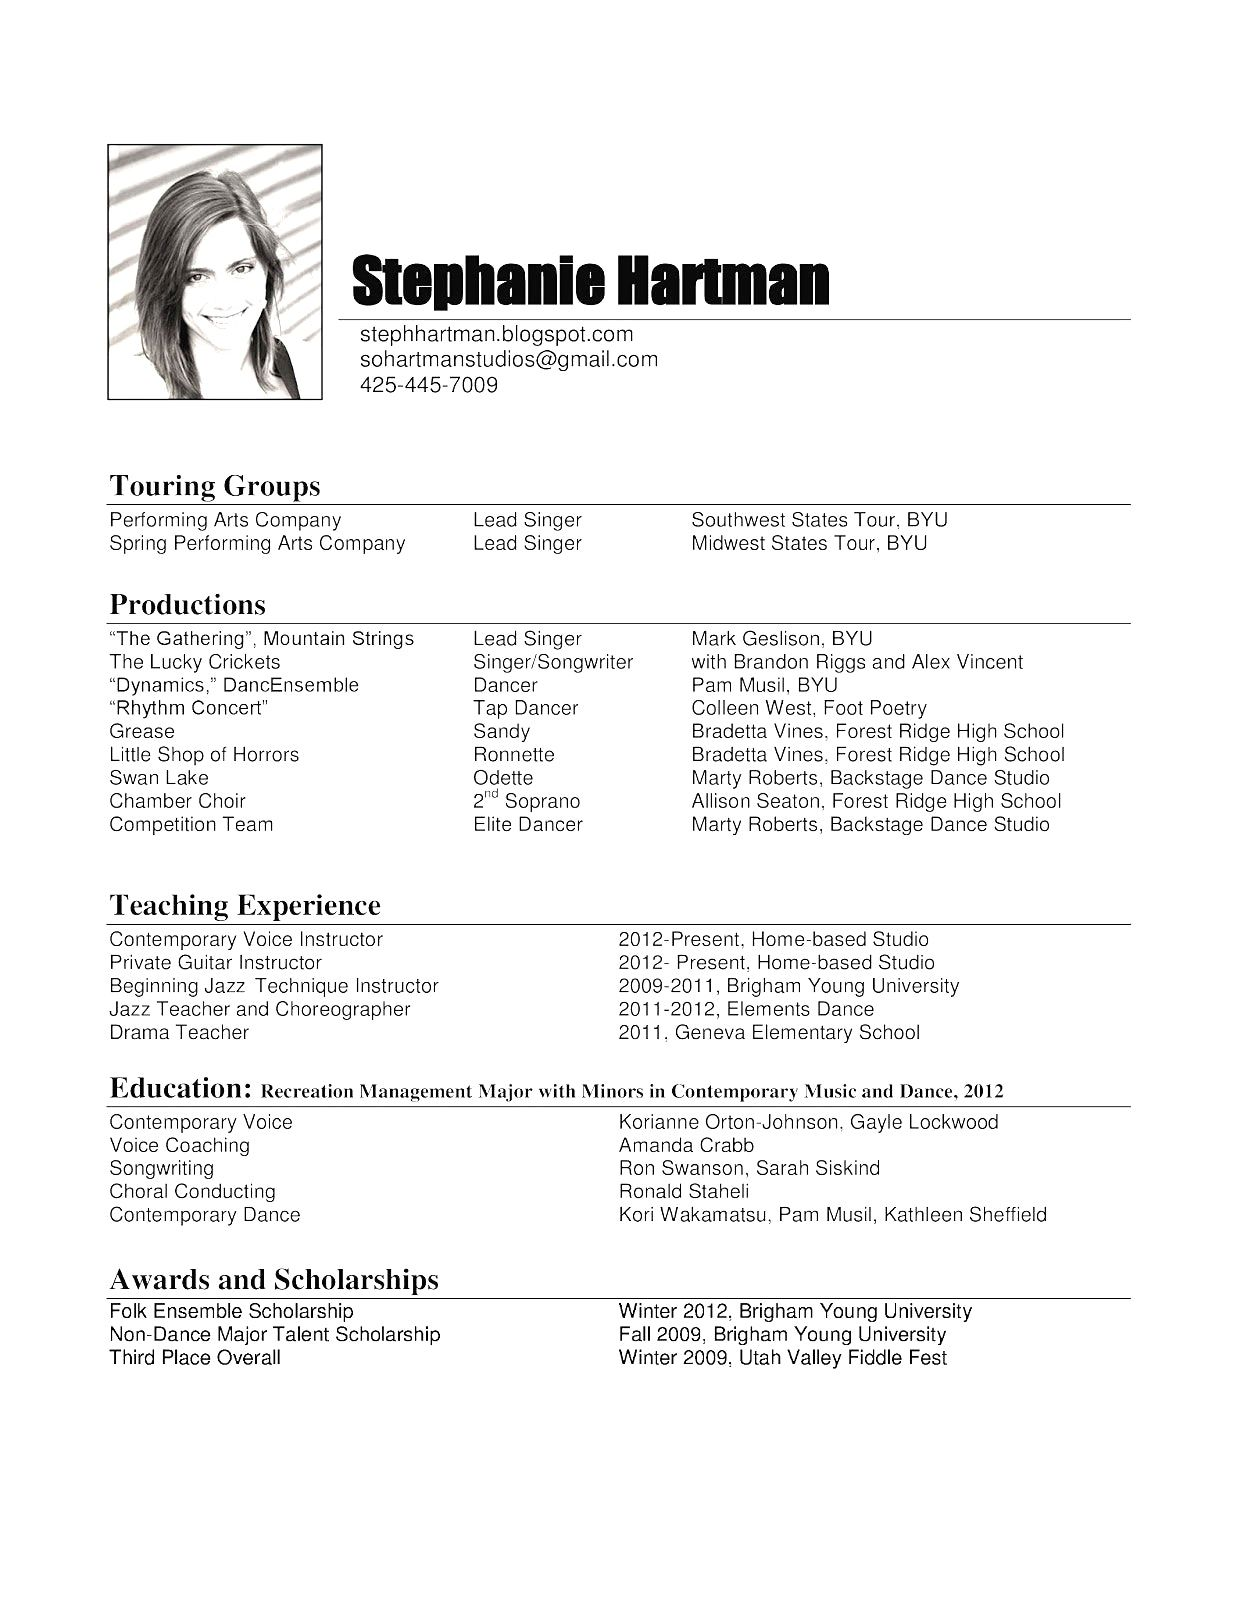 resume examples byu resume examples pinterest resume examples